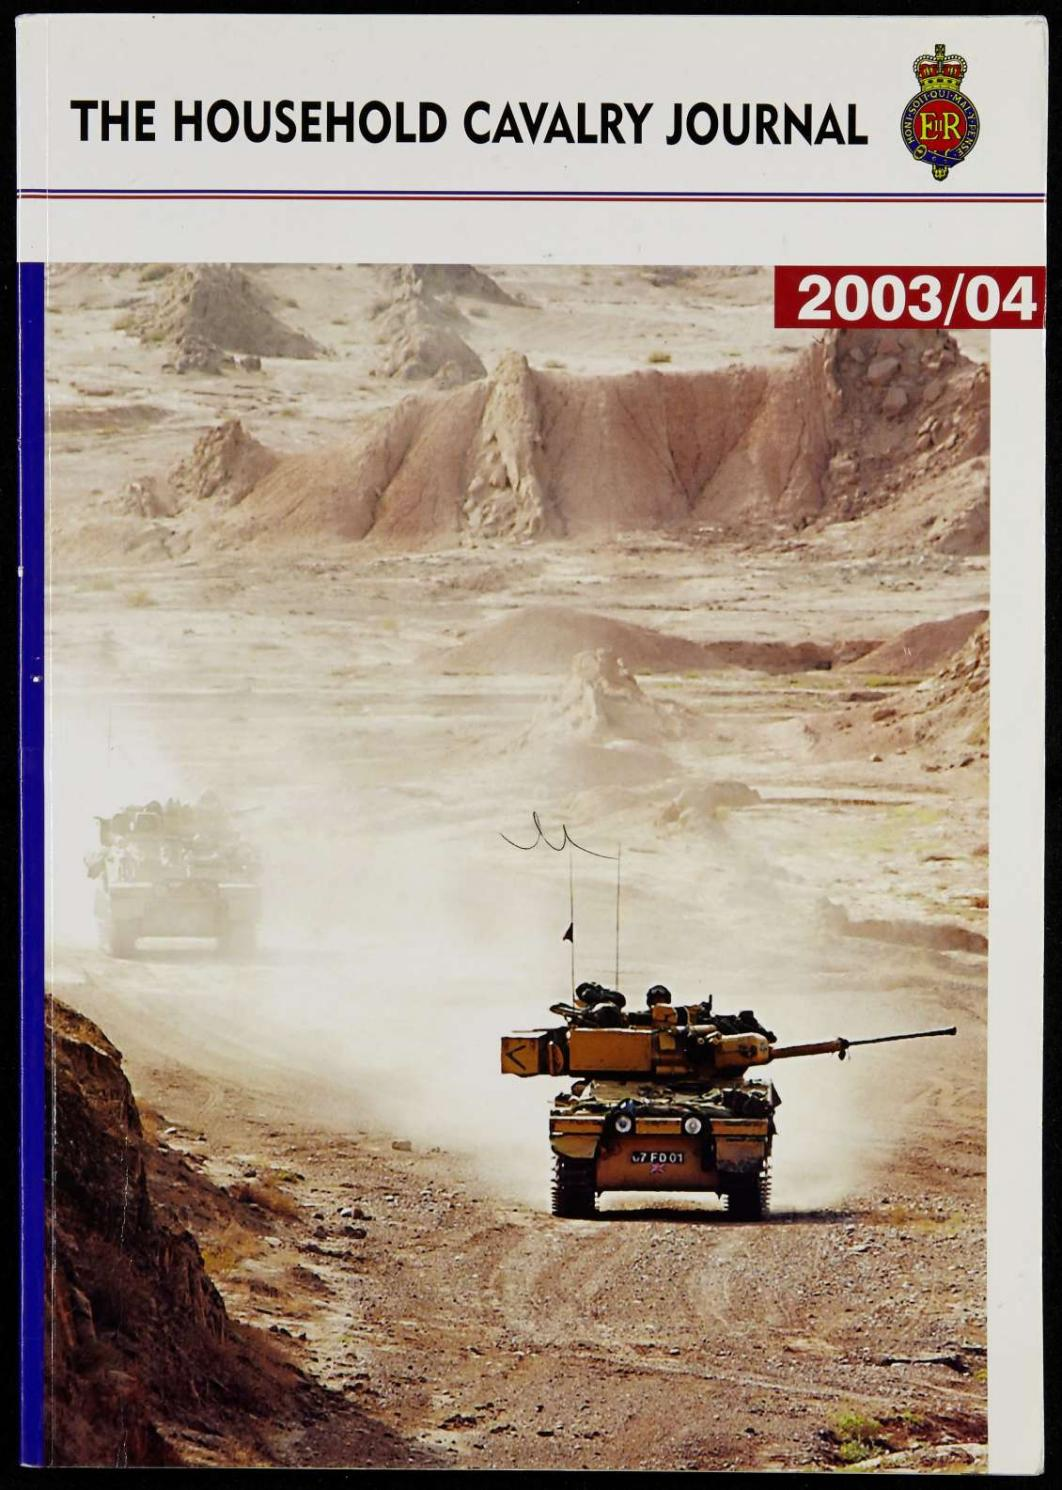 H cav 2003 2004 complete by